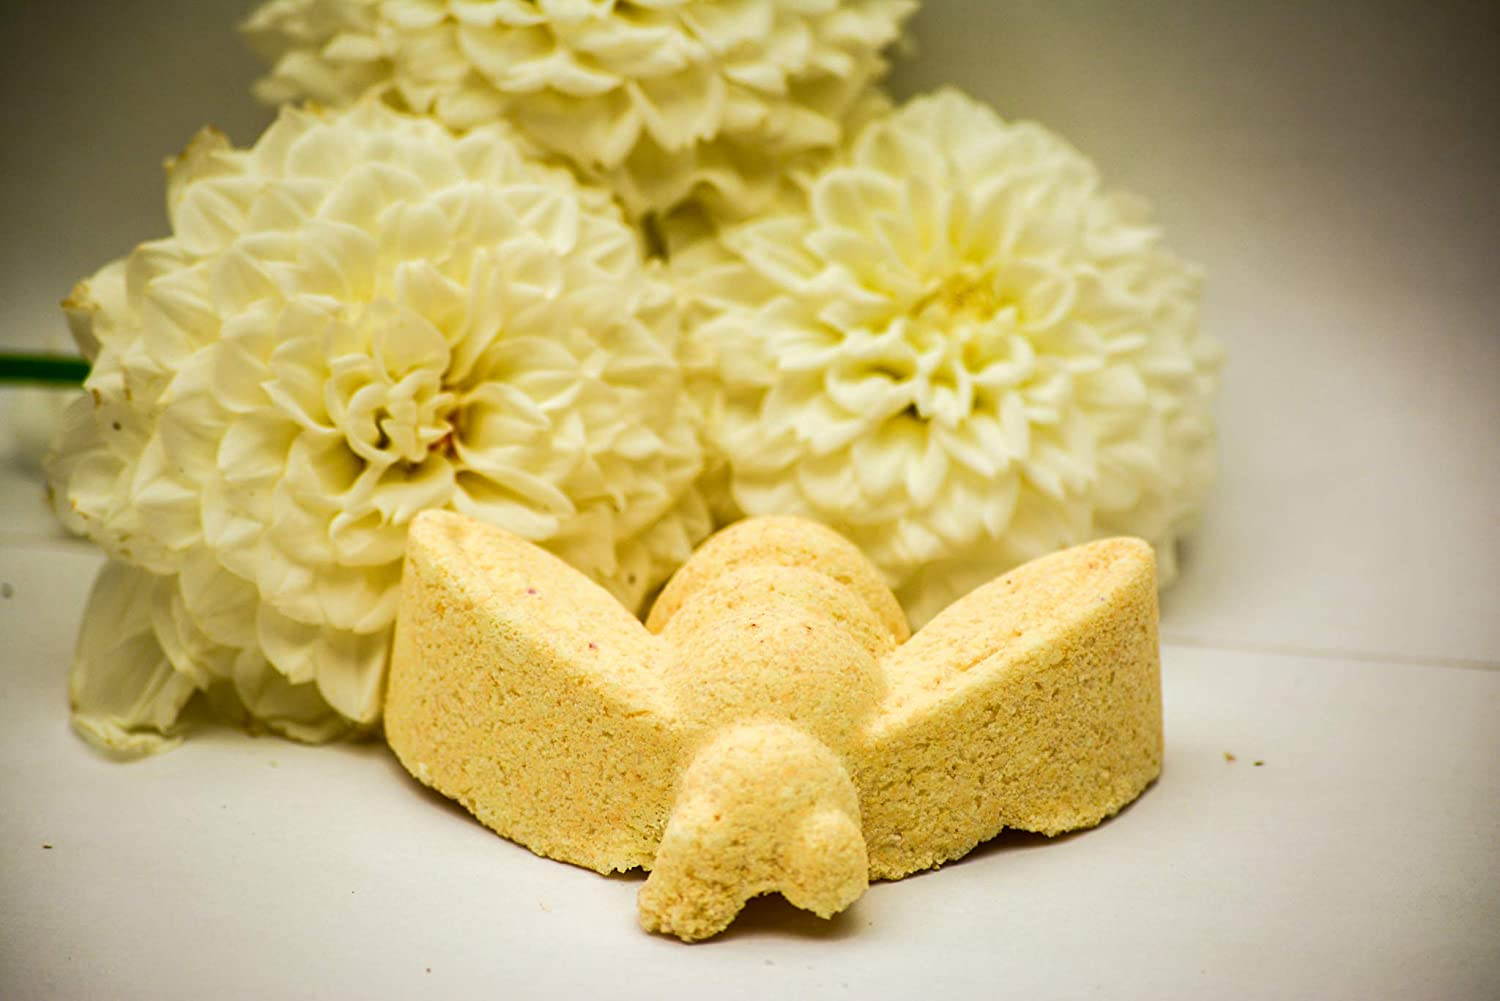 Bath Bomb made with Goat Milk Vanilla Financial sales sale and B scented oz. trust 7